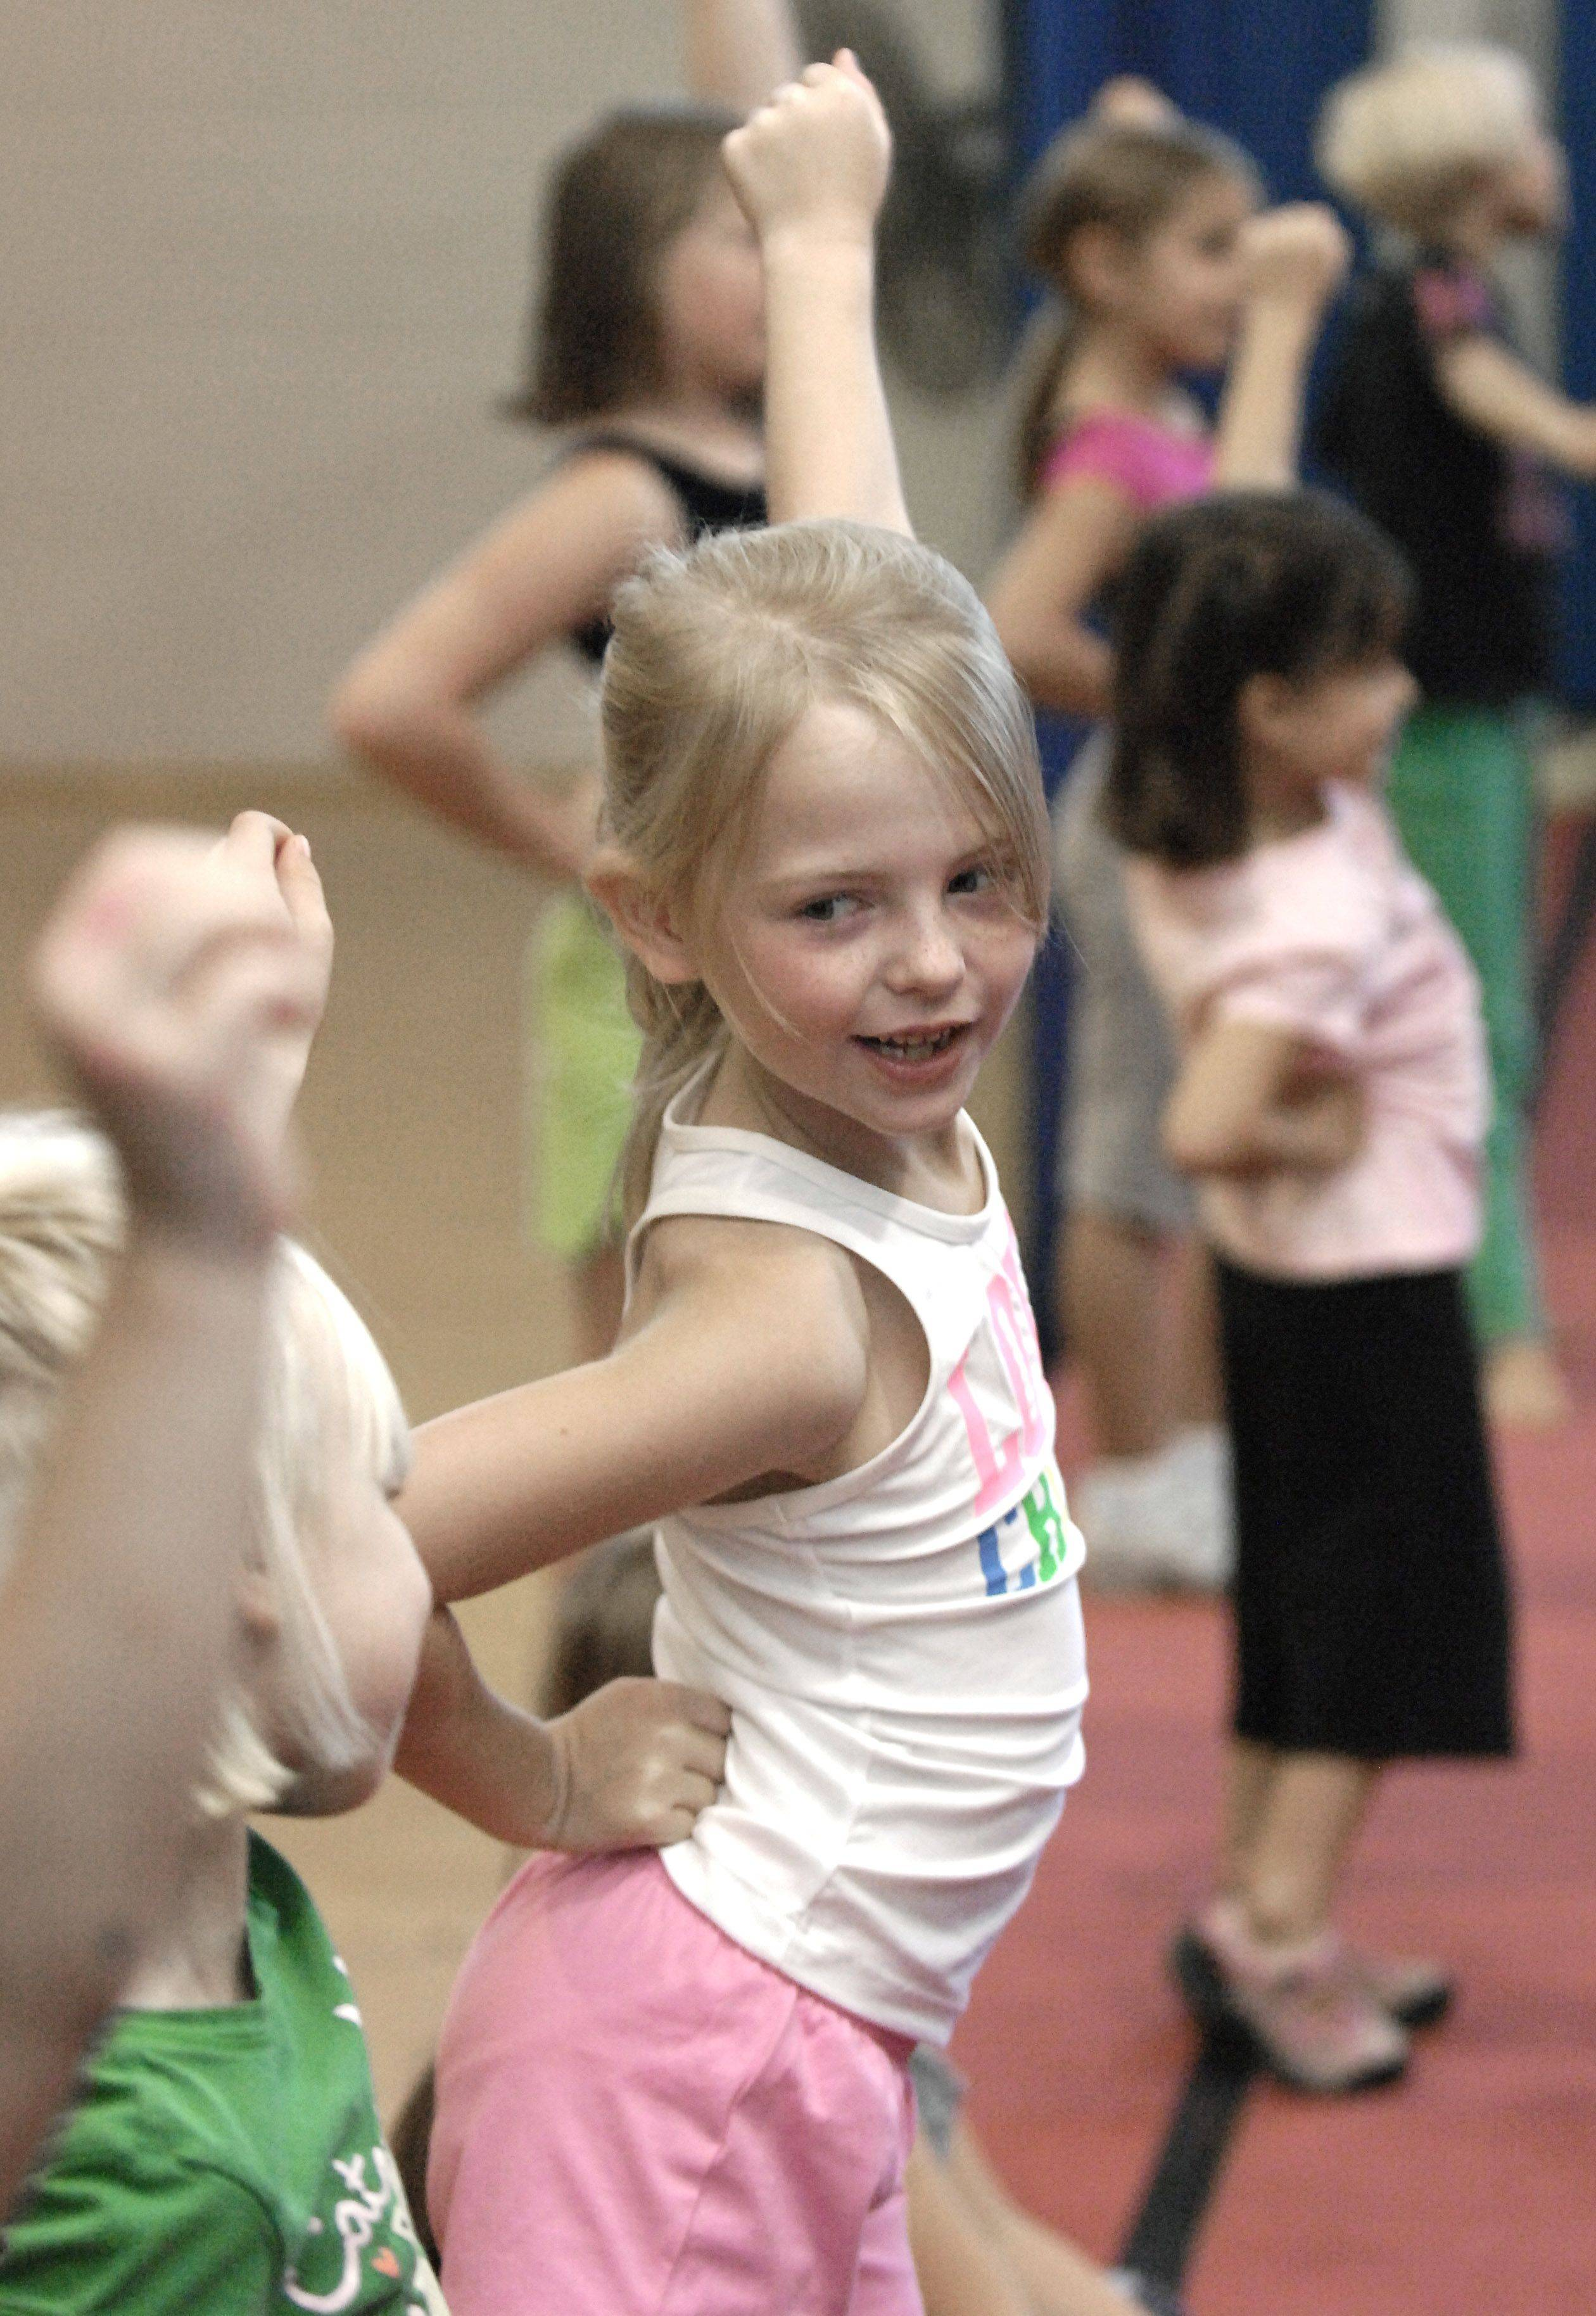 Sasha Nahorski, 7, of Batavia, plays along with a game called Cheerleader Says during Batavia Park District's cheer class for young girls.